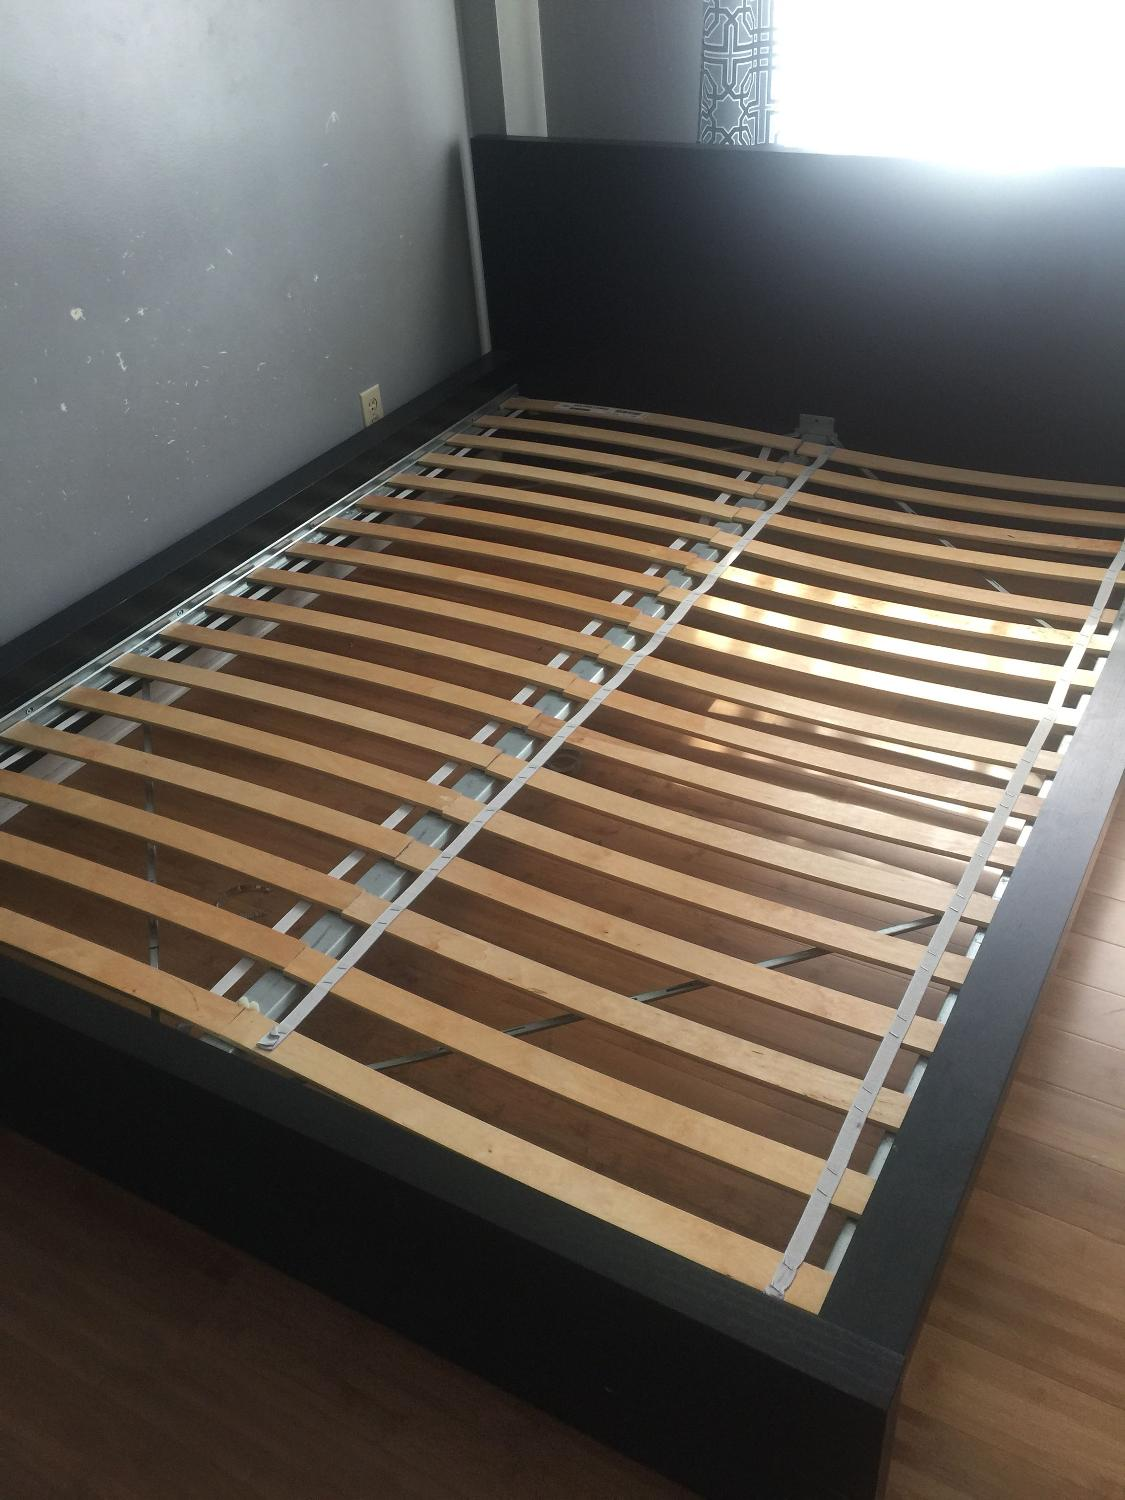 Find More Ikea Malm Bed Frame For Sale At Up To 90 Off